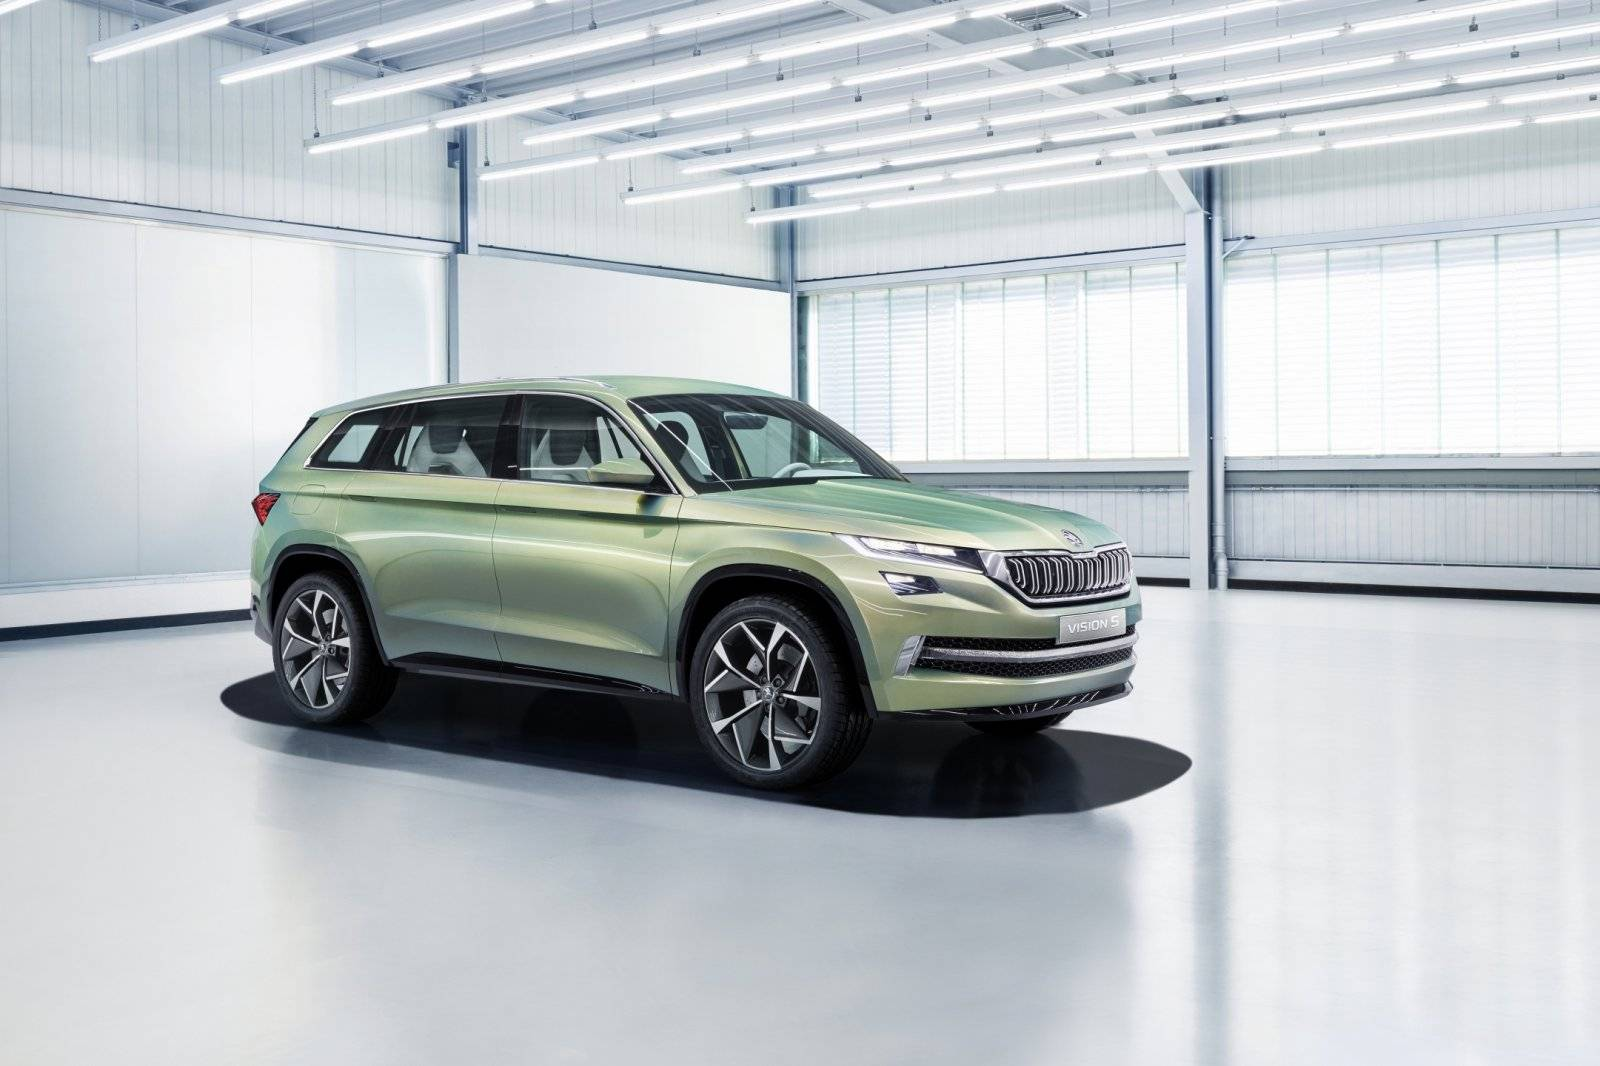 skoda visions plug in hybride 6 persoons suv autonieuws. Black Bedroom Furniture Sets. Home Design Ideas